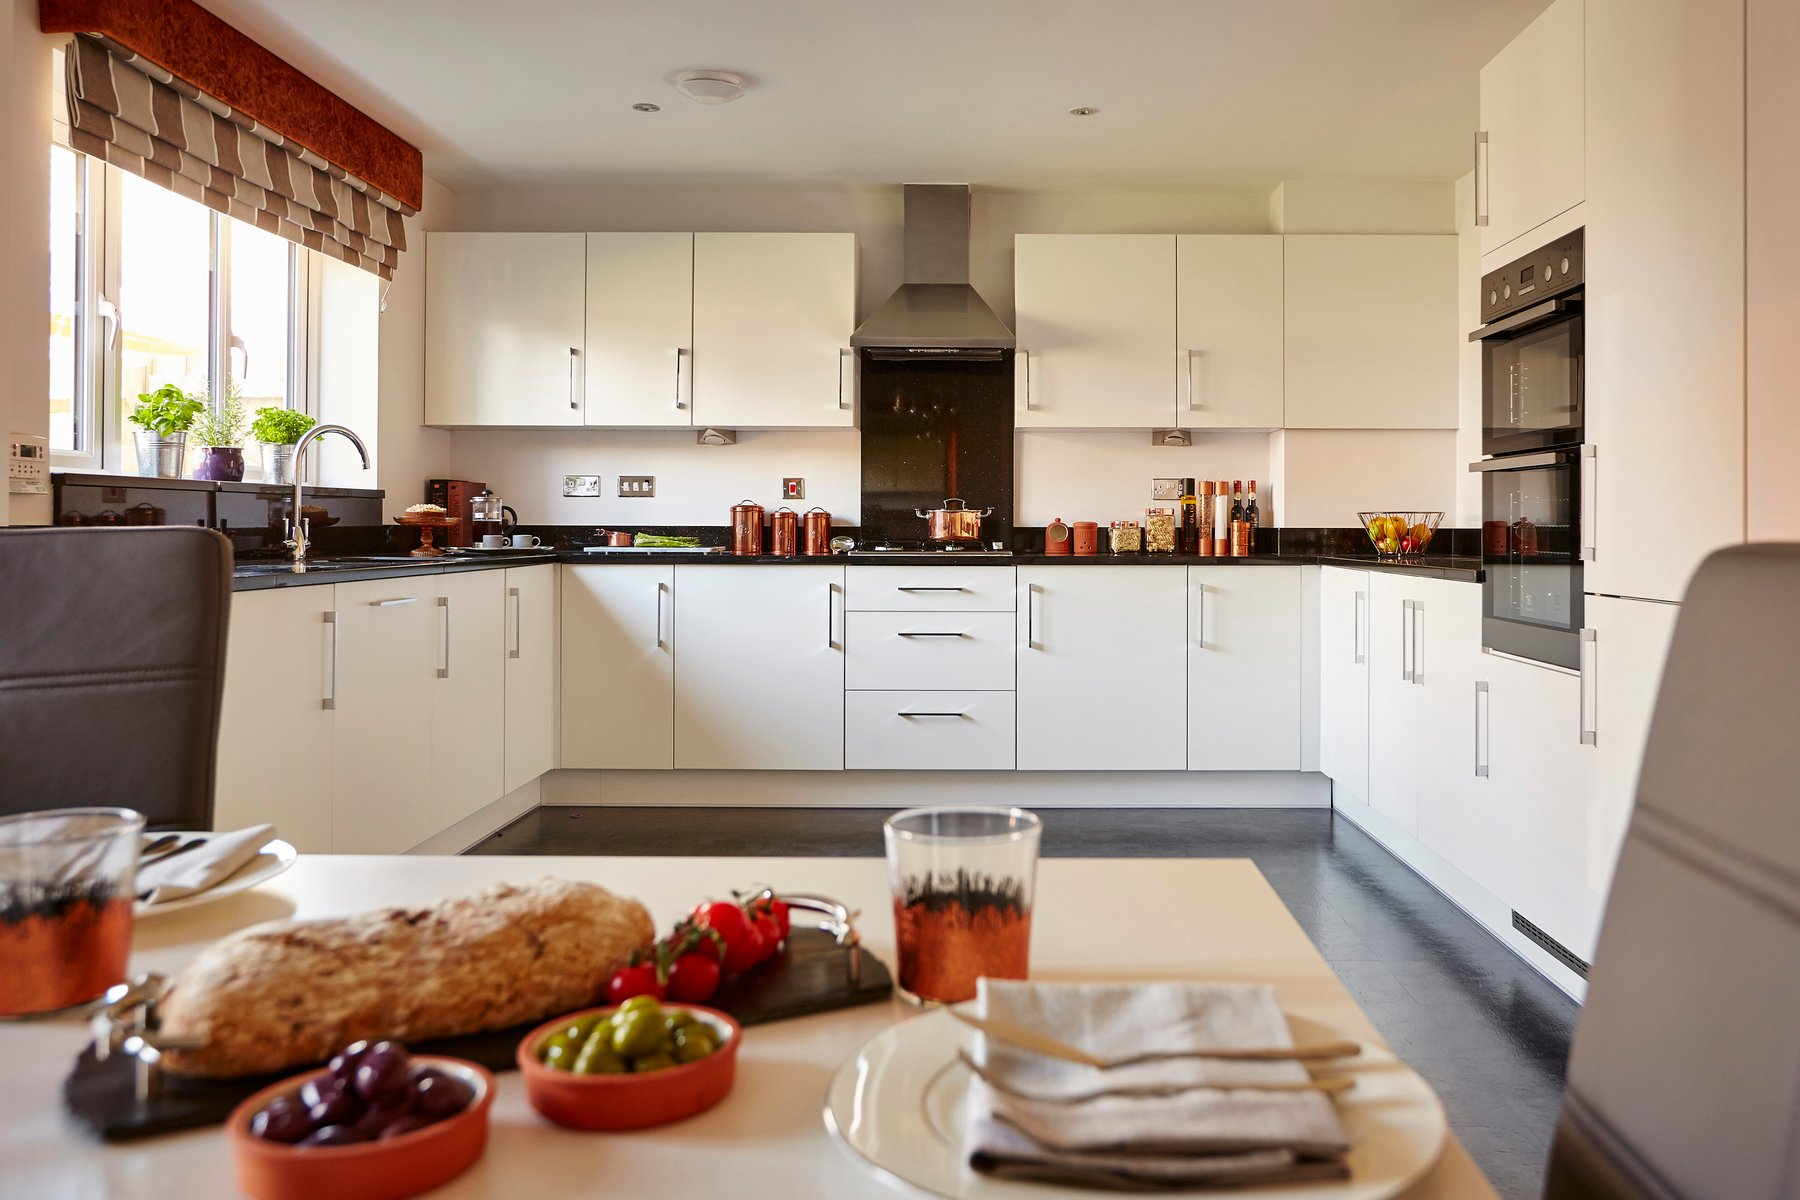 tw_wmids_bowbrook_hartlebury_pd411_haddenham_kitchen